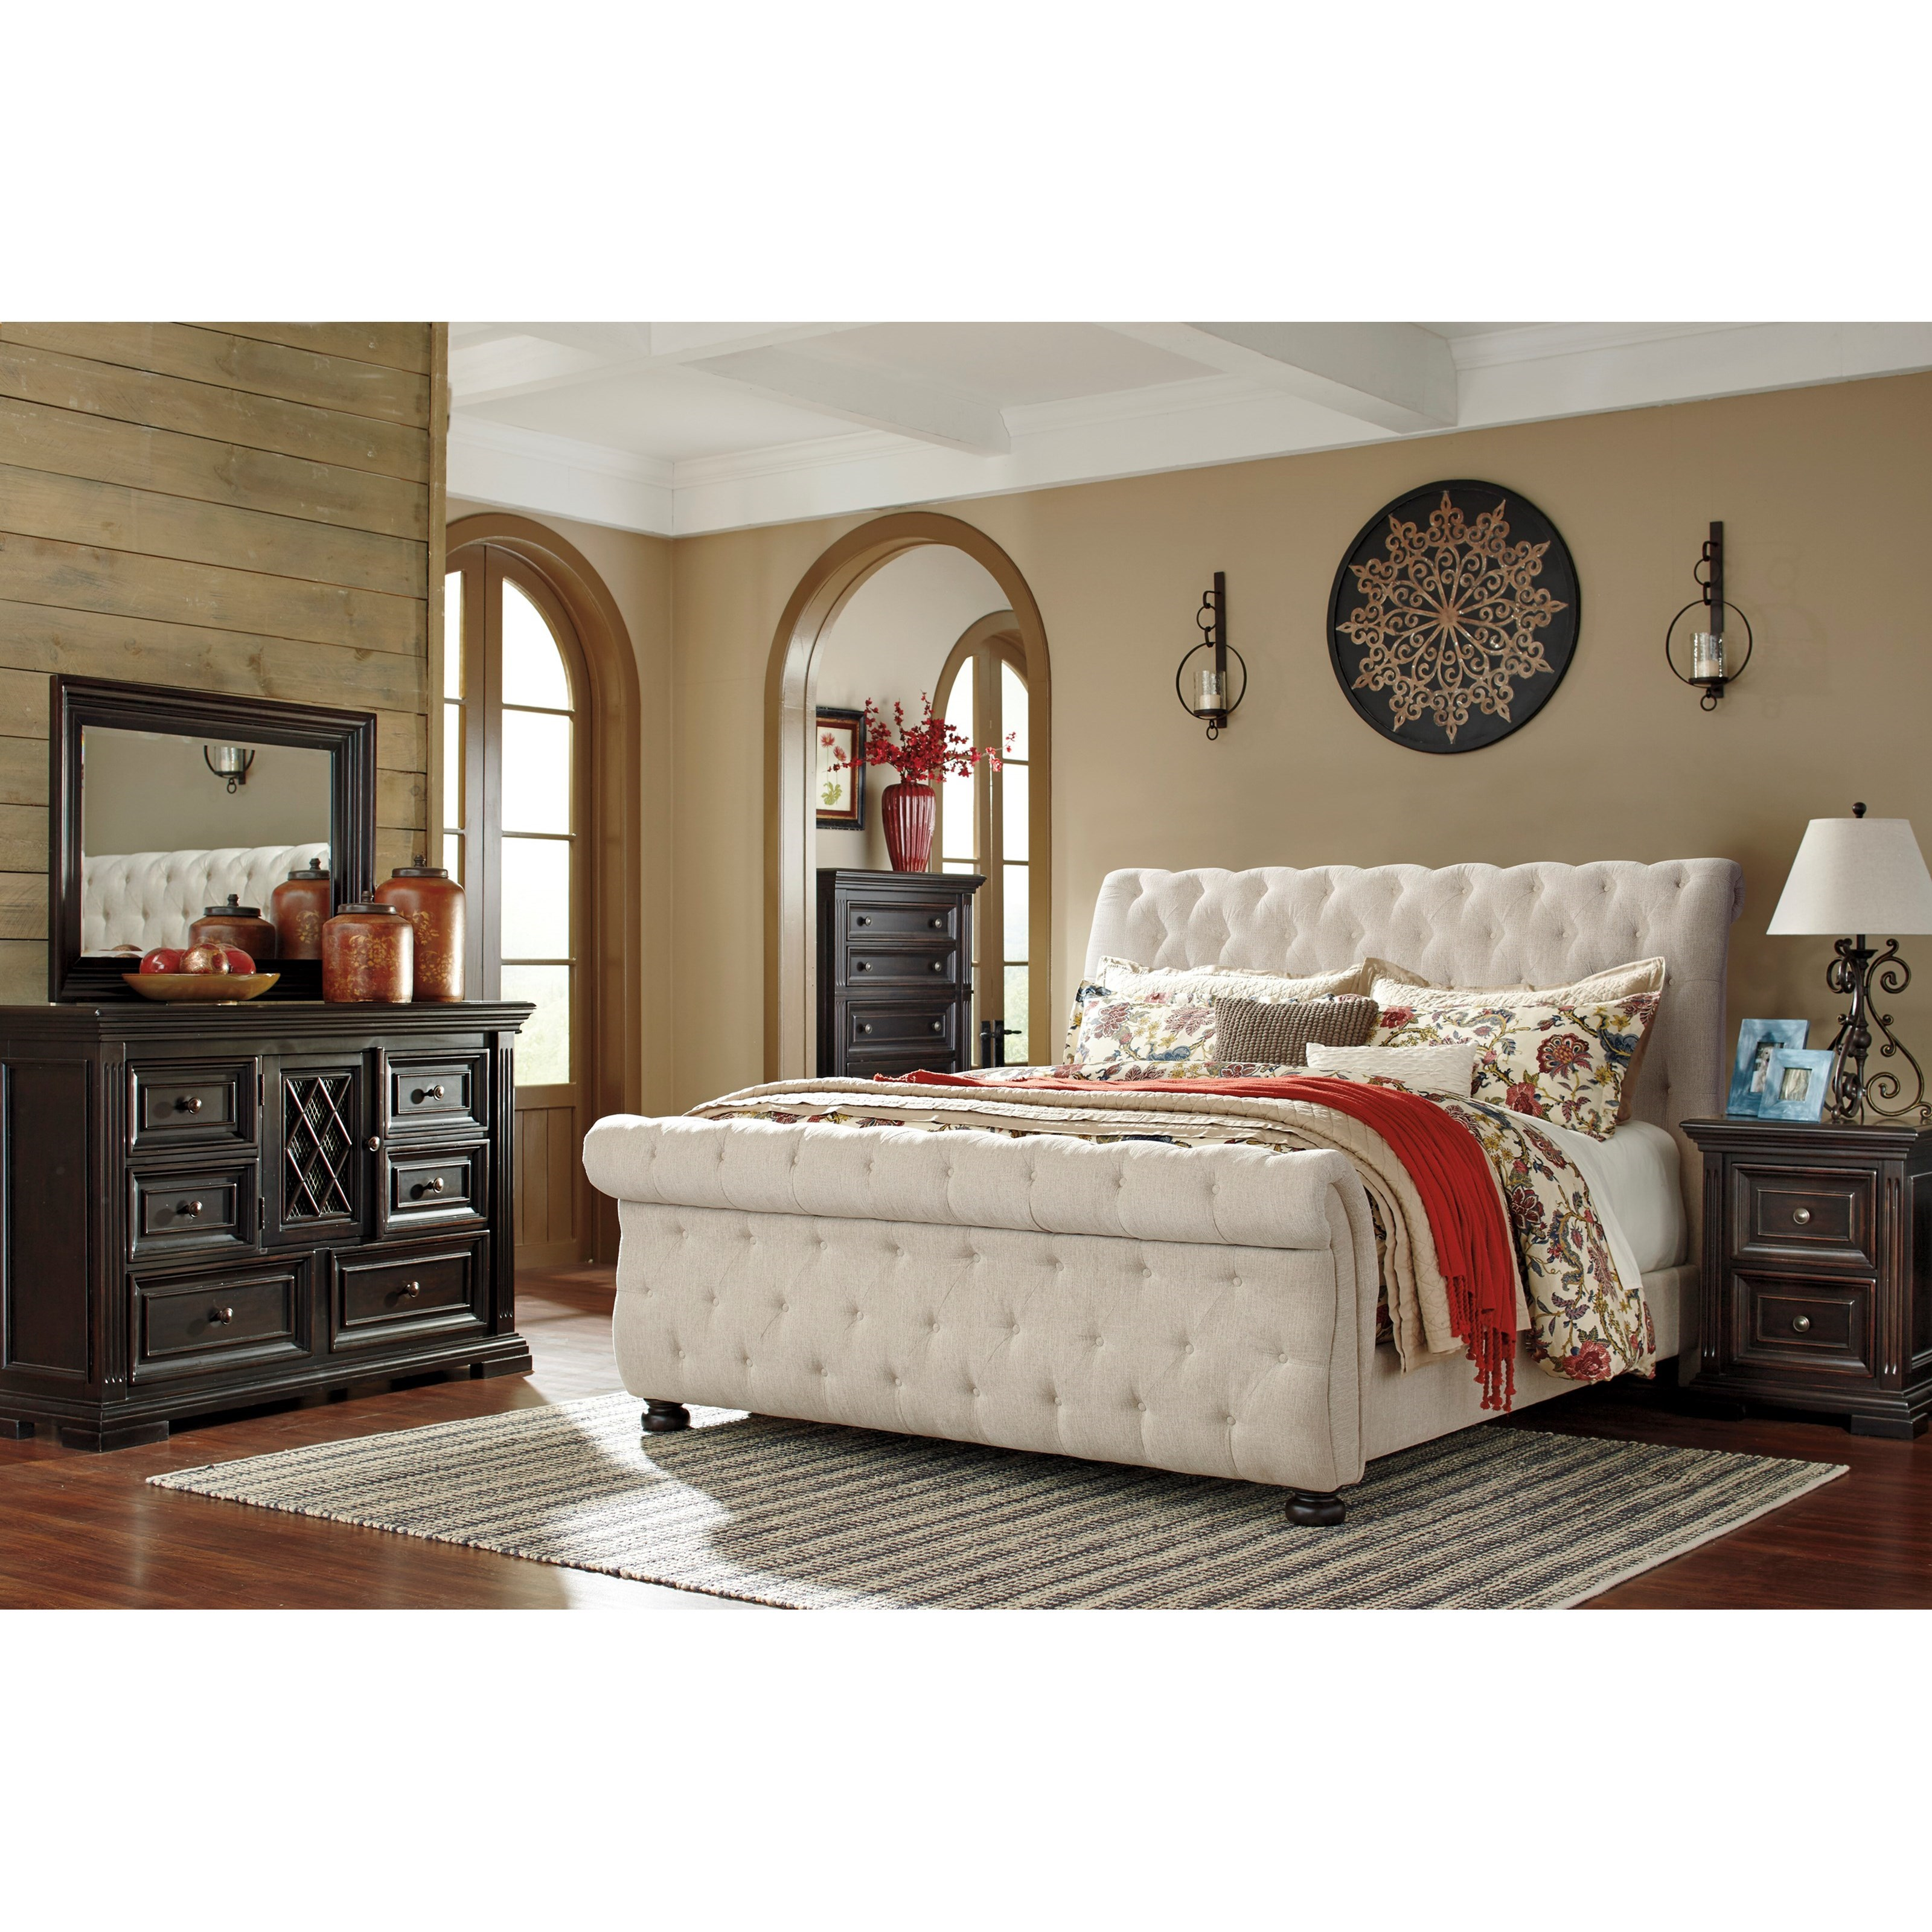 Ashley Furniture Fayetteville: Signature Design By Ashley Willenburg Queen Upholstered